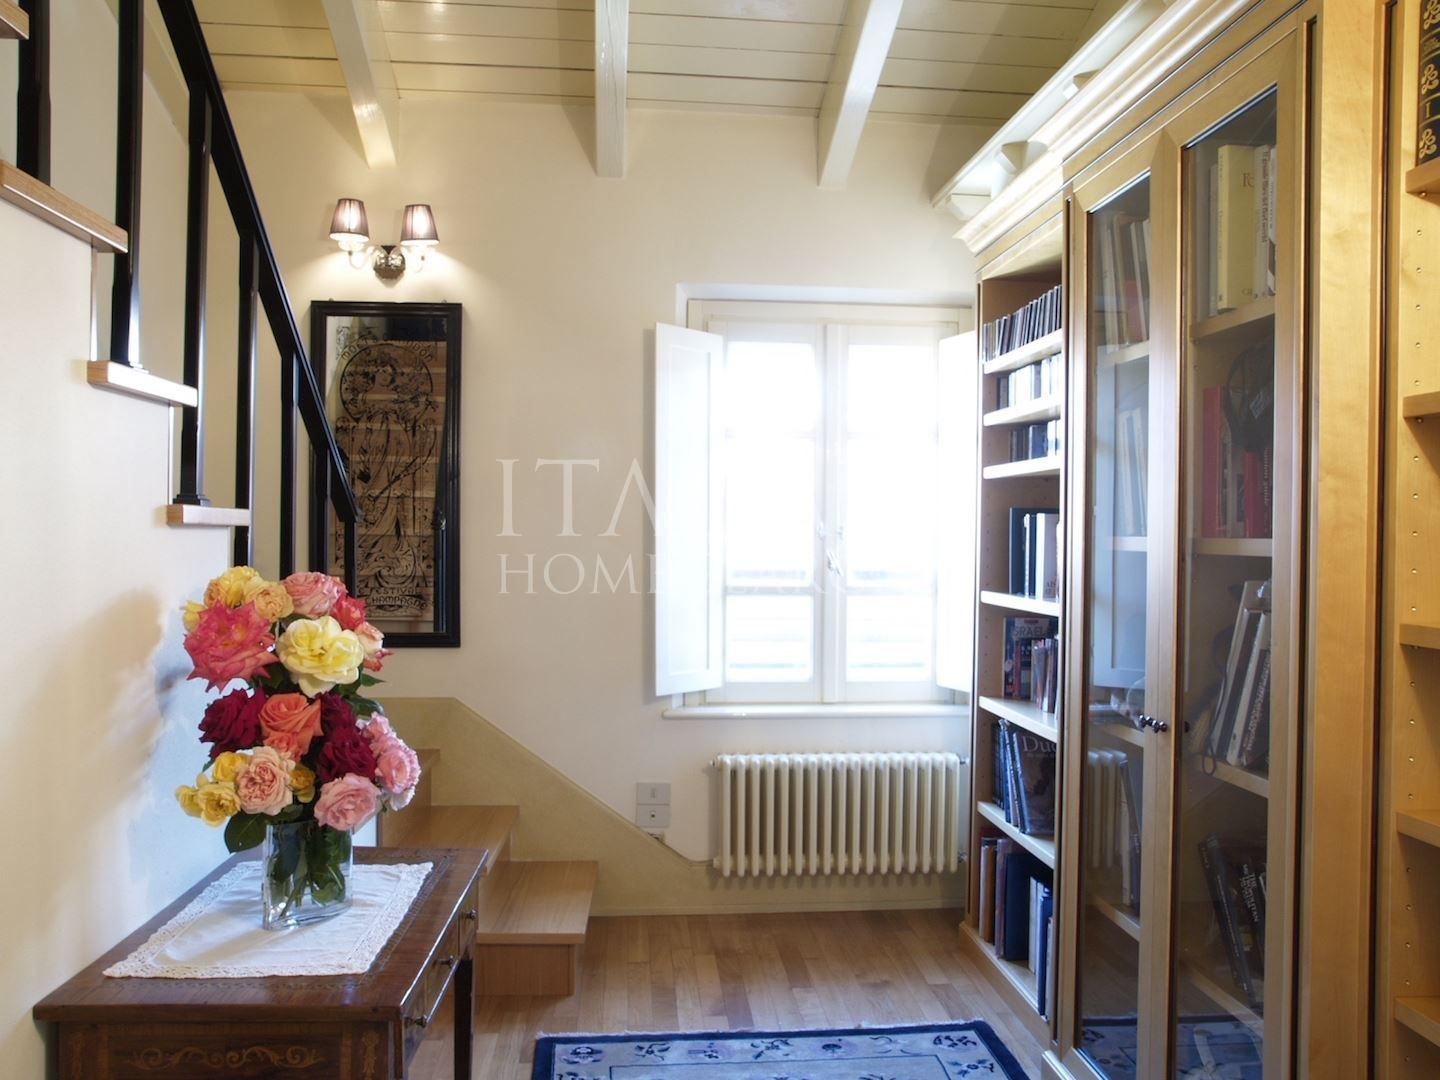 Apartment for sale in Pistoia, Tuscany. | Apartments for ...